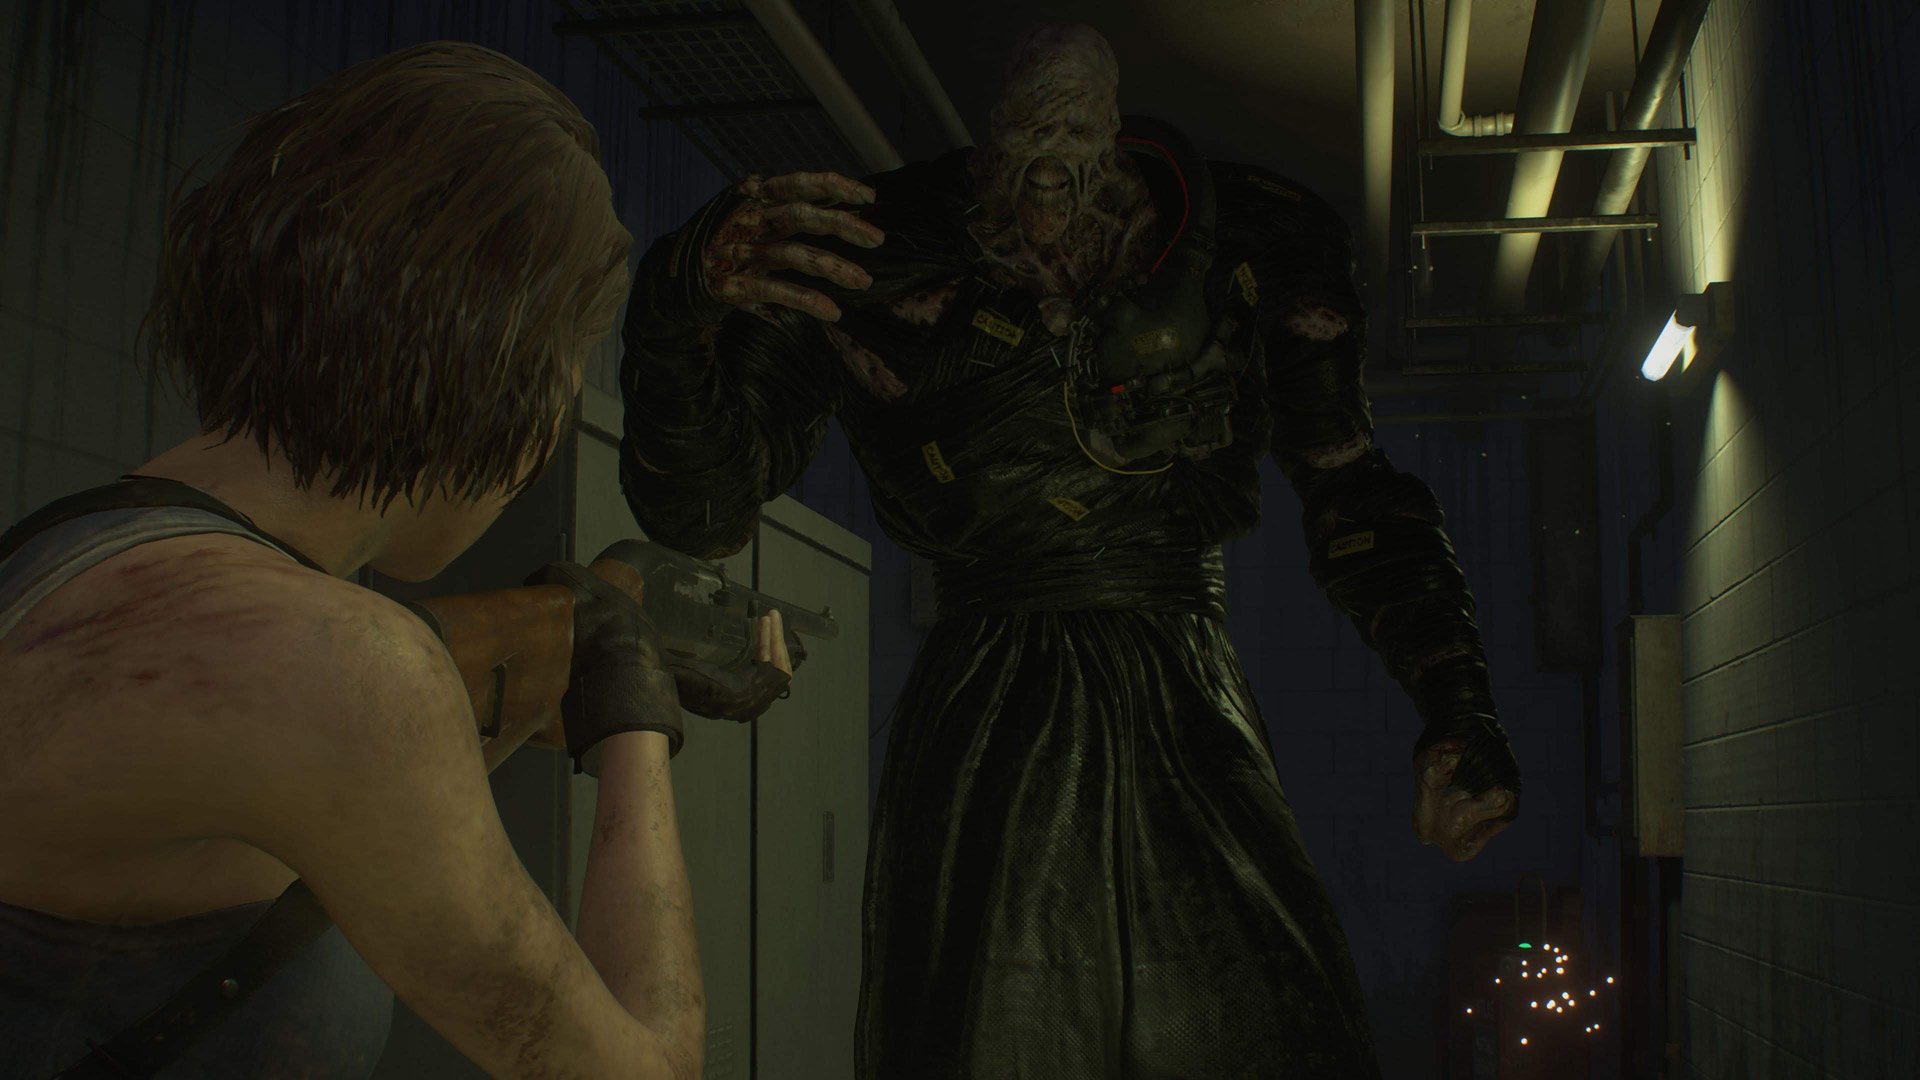 Resident Evil 3 Wallpaper in 1920x1080